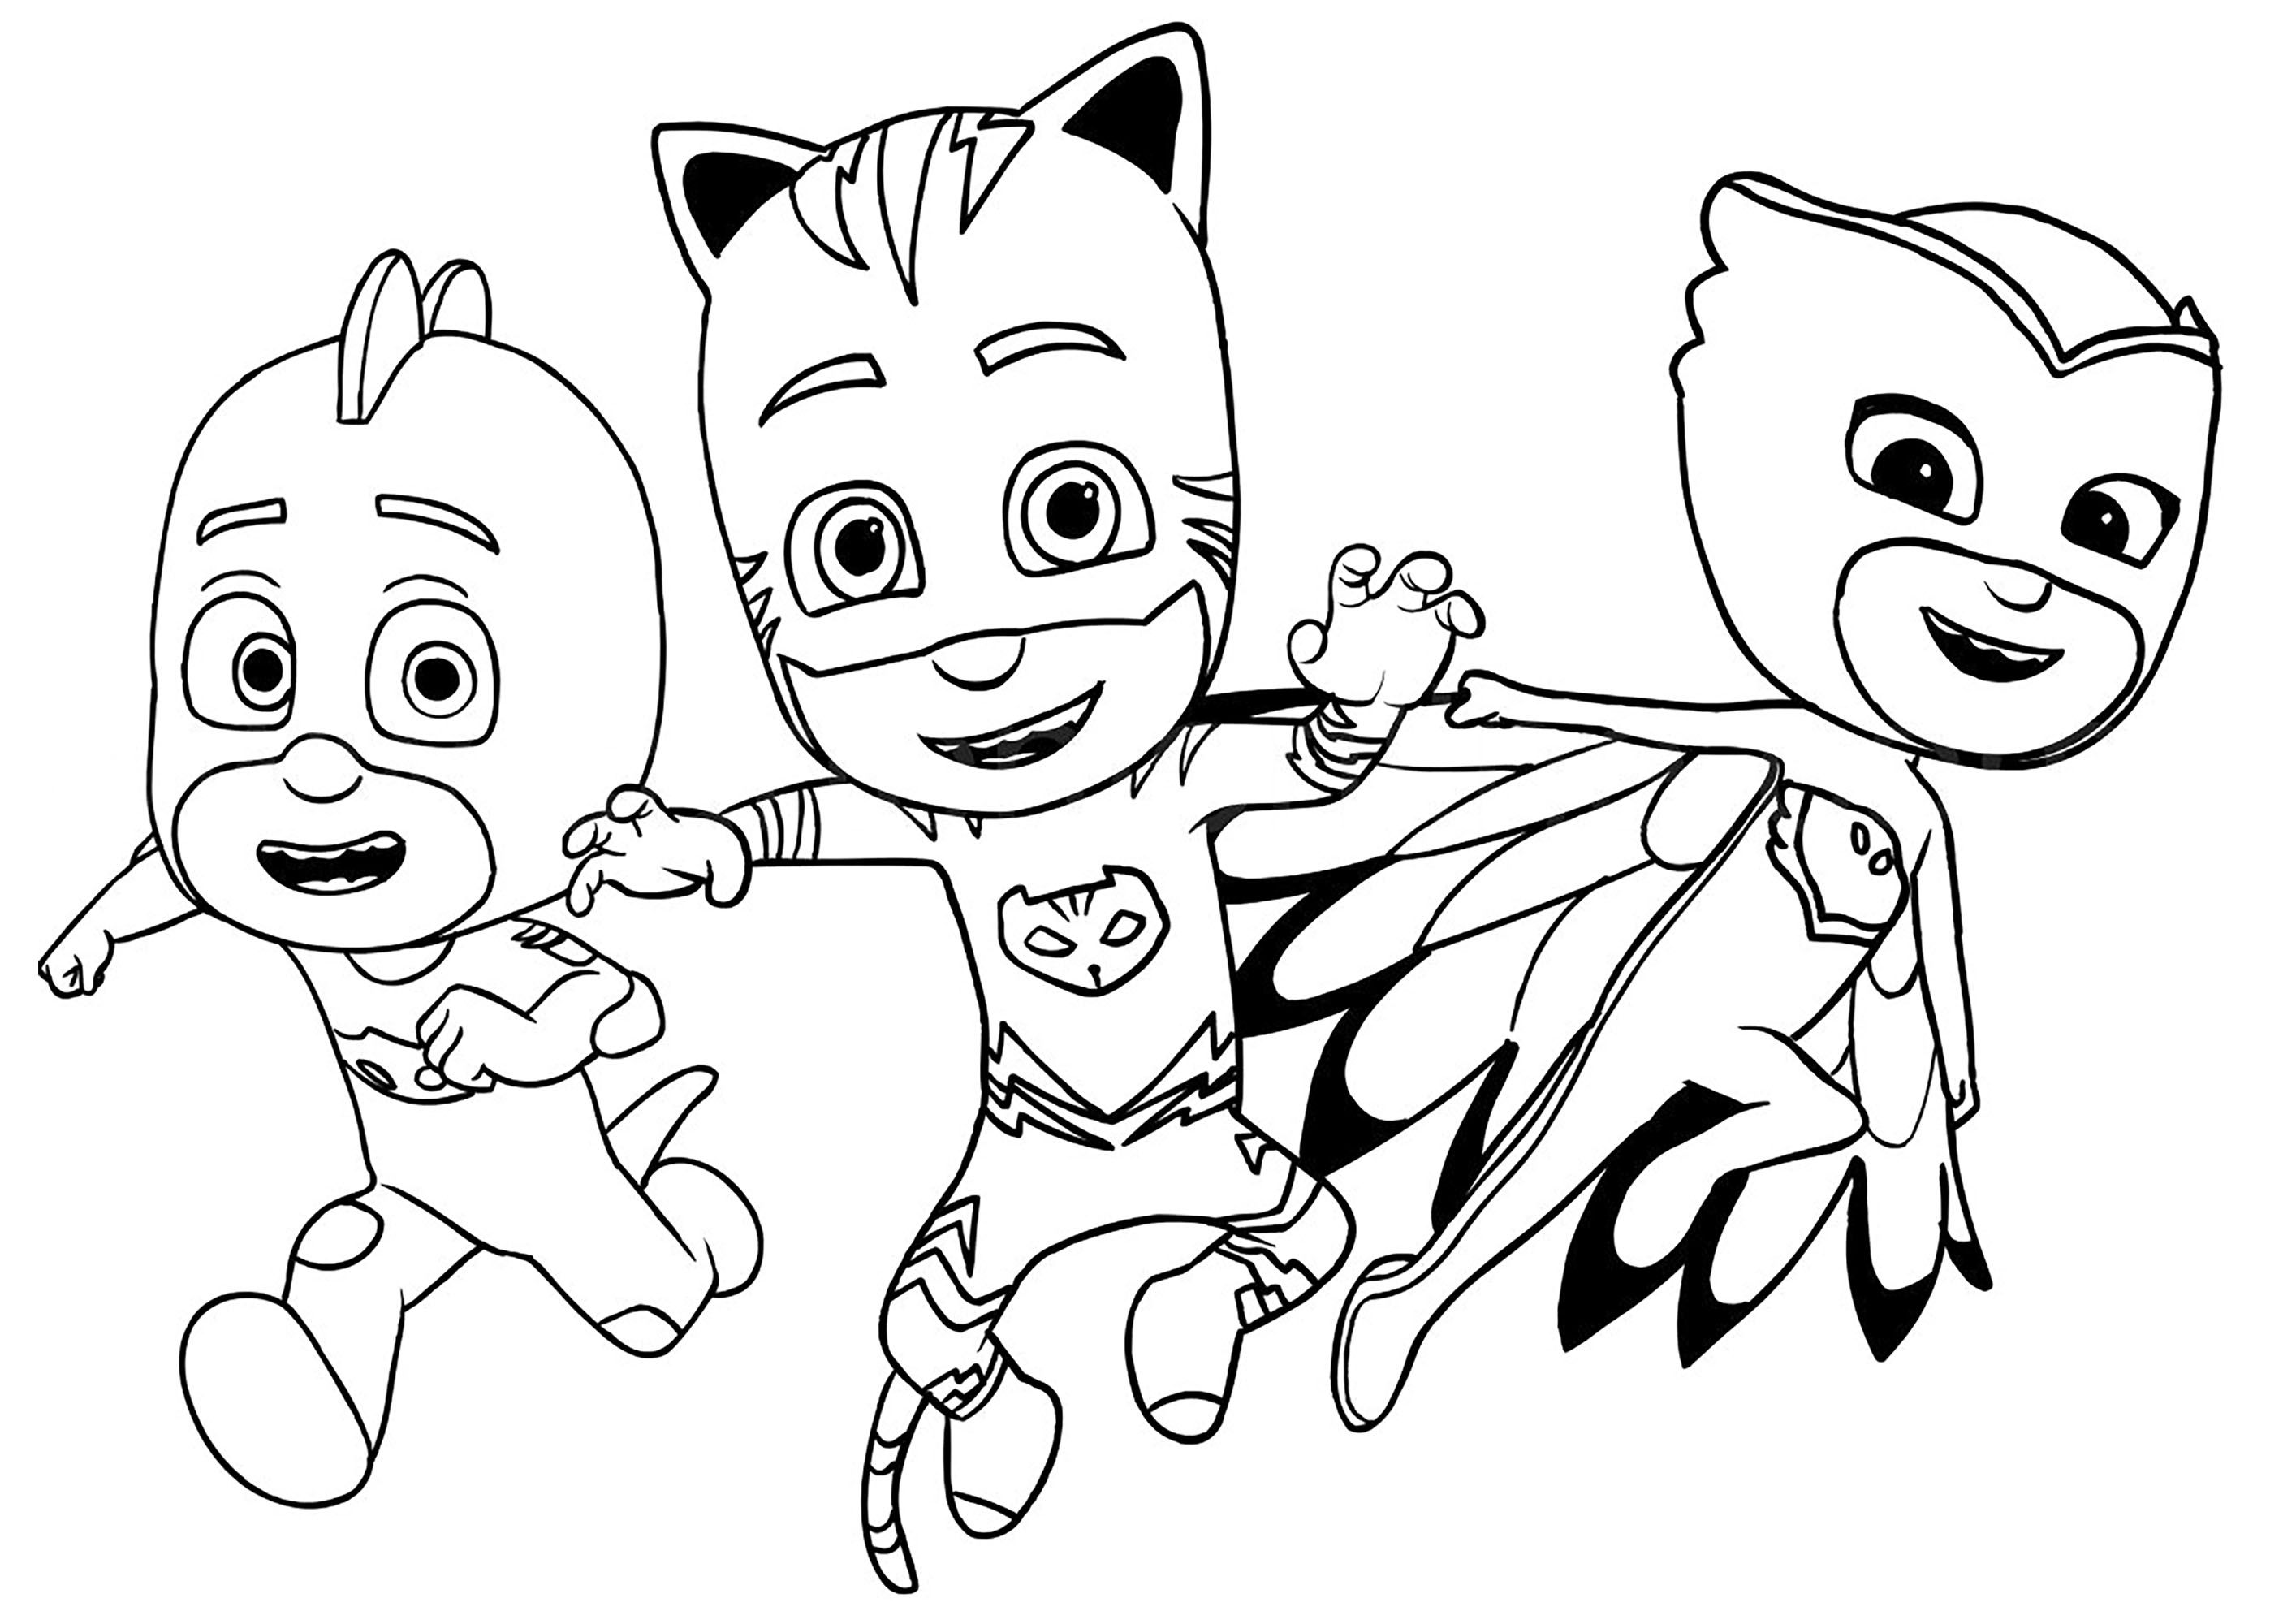 - Pin By Roxanne On Pj Masks Pj Masks Coloring Pages, Cartoon